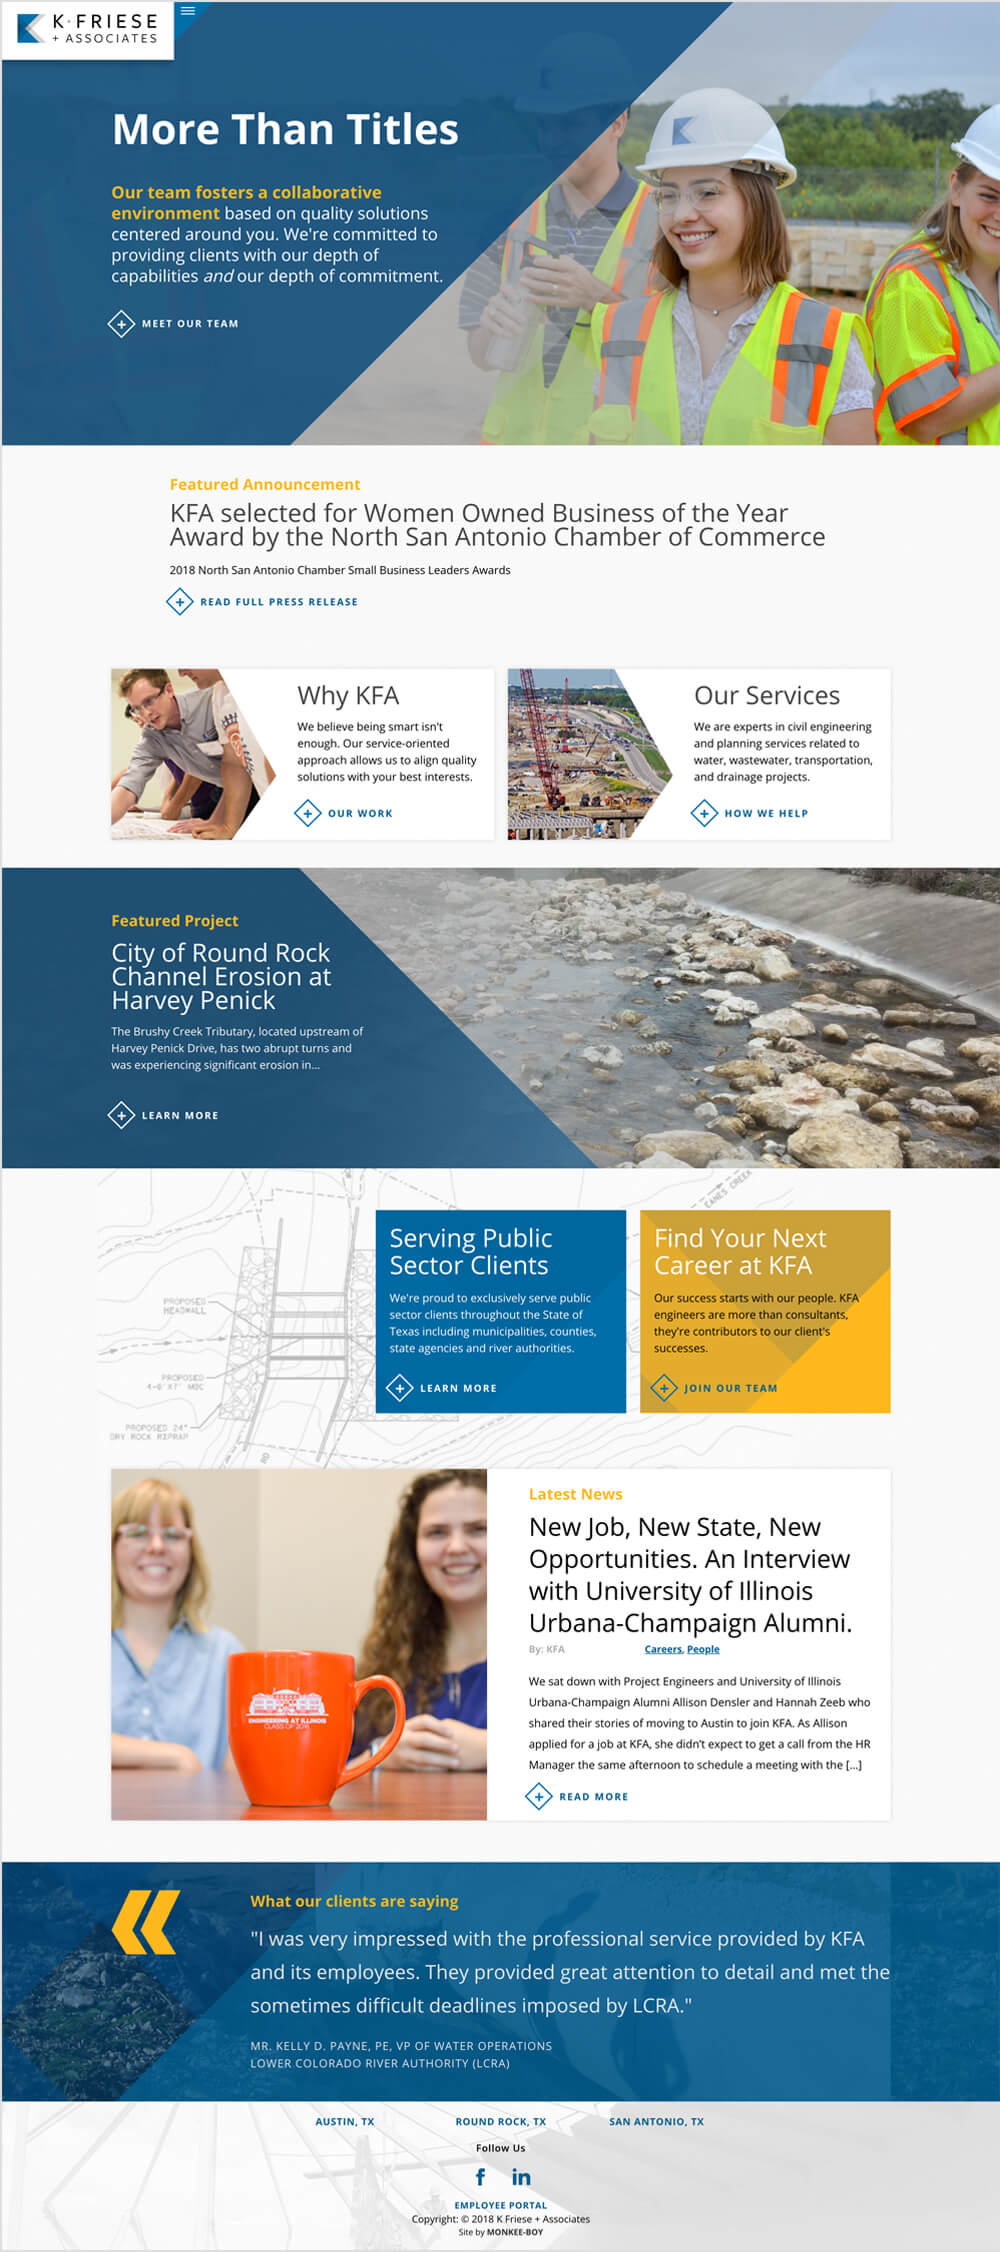 K Friese & Associates Home Page